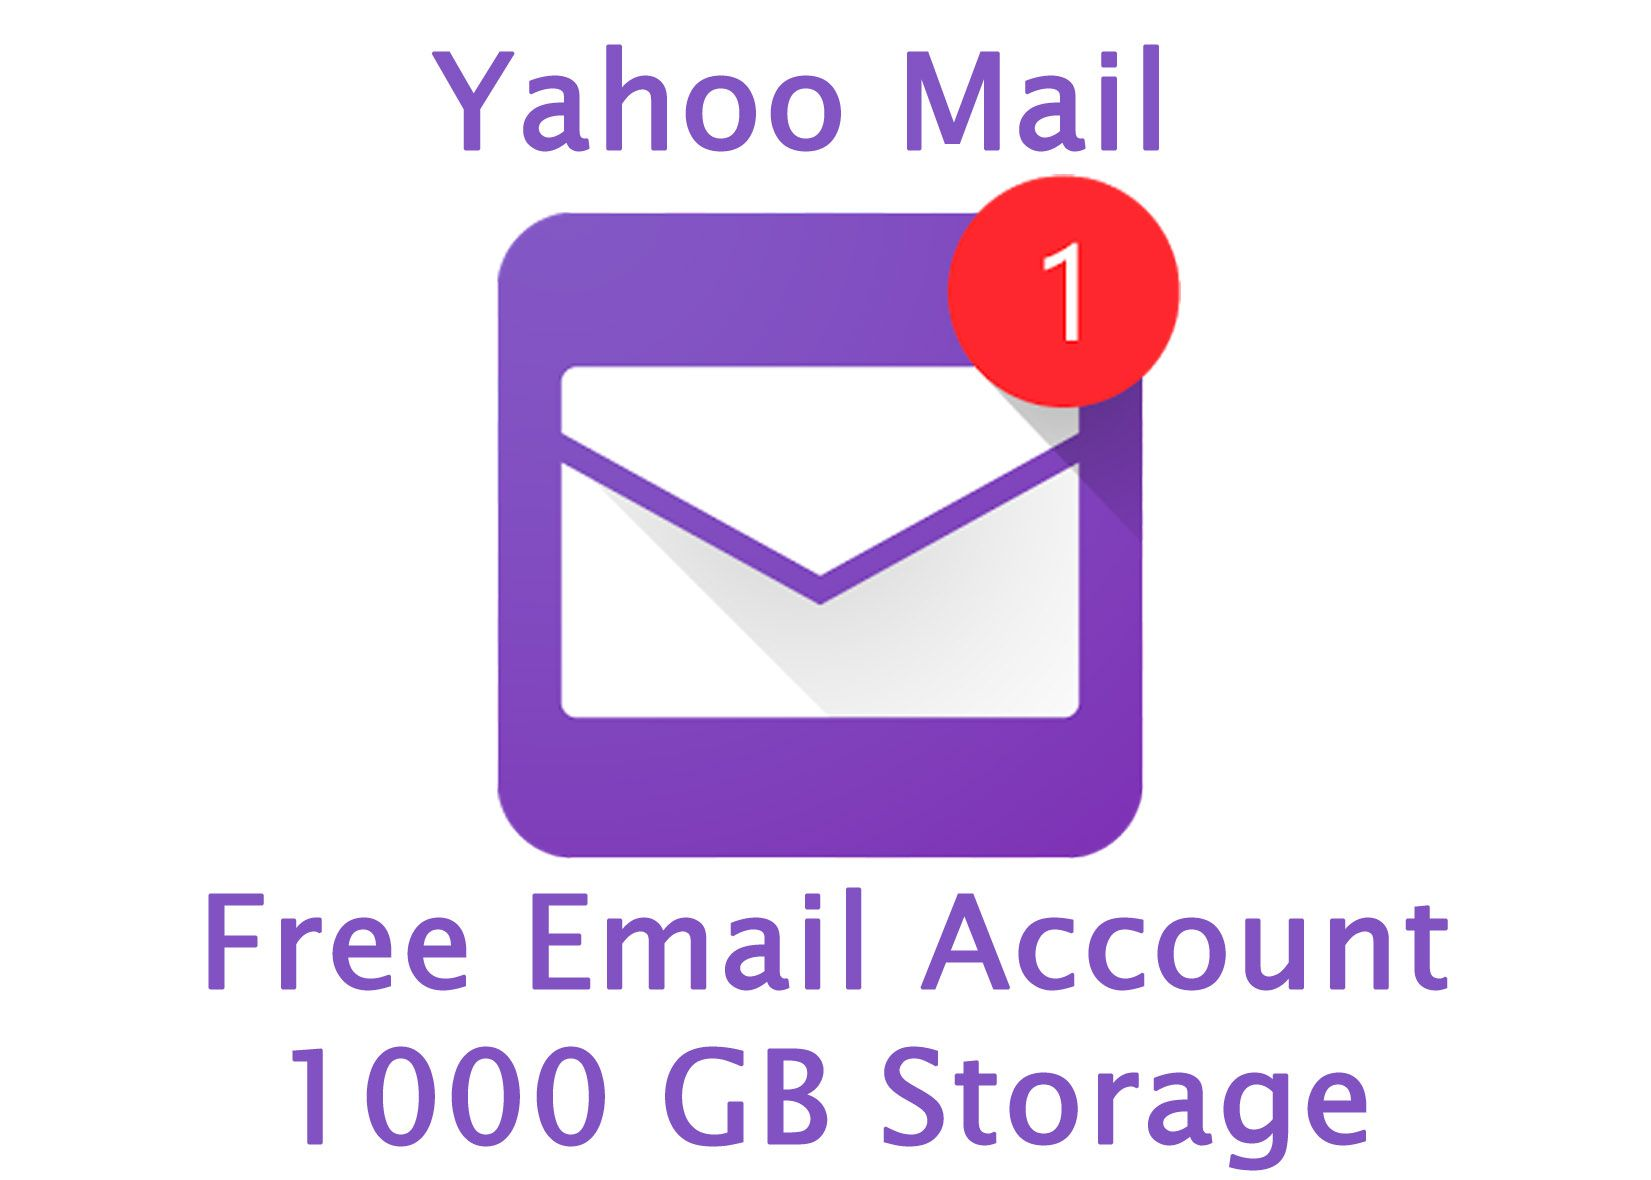 Yahoo Mail Is A Platform Which Offers Mail Services Via Online To Its Visiting Users The Platform S Owner Is Oath Mail Login Free Email Services Mail Account